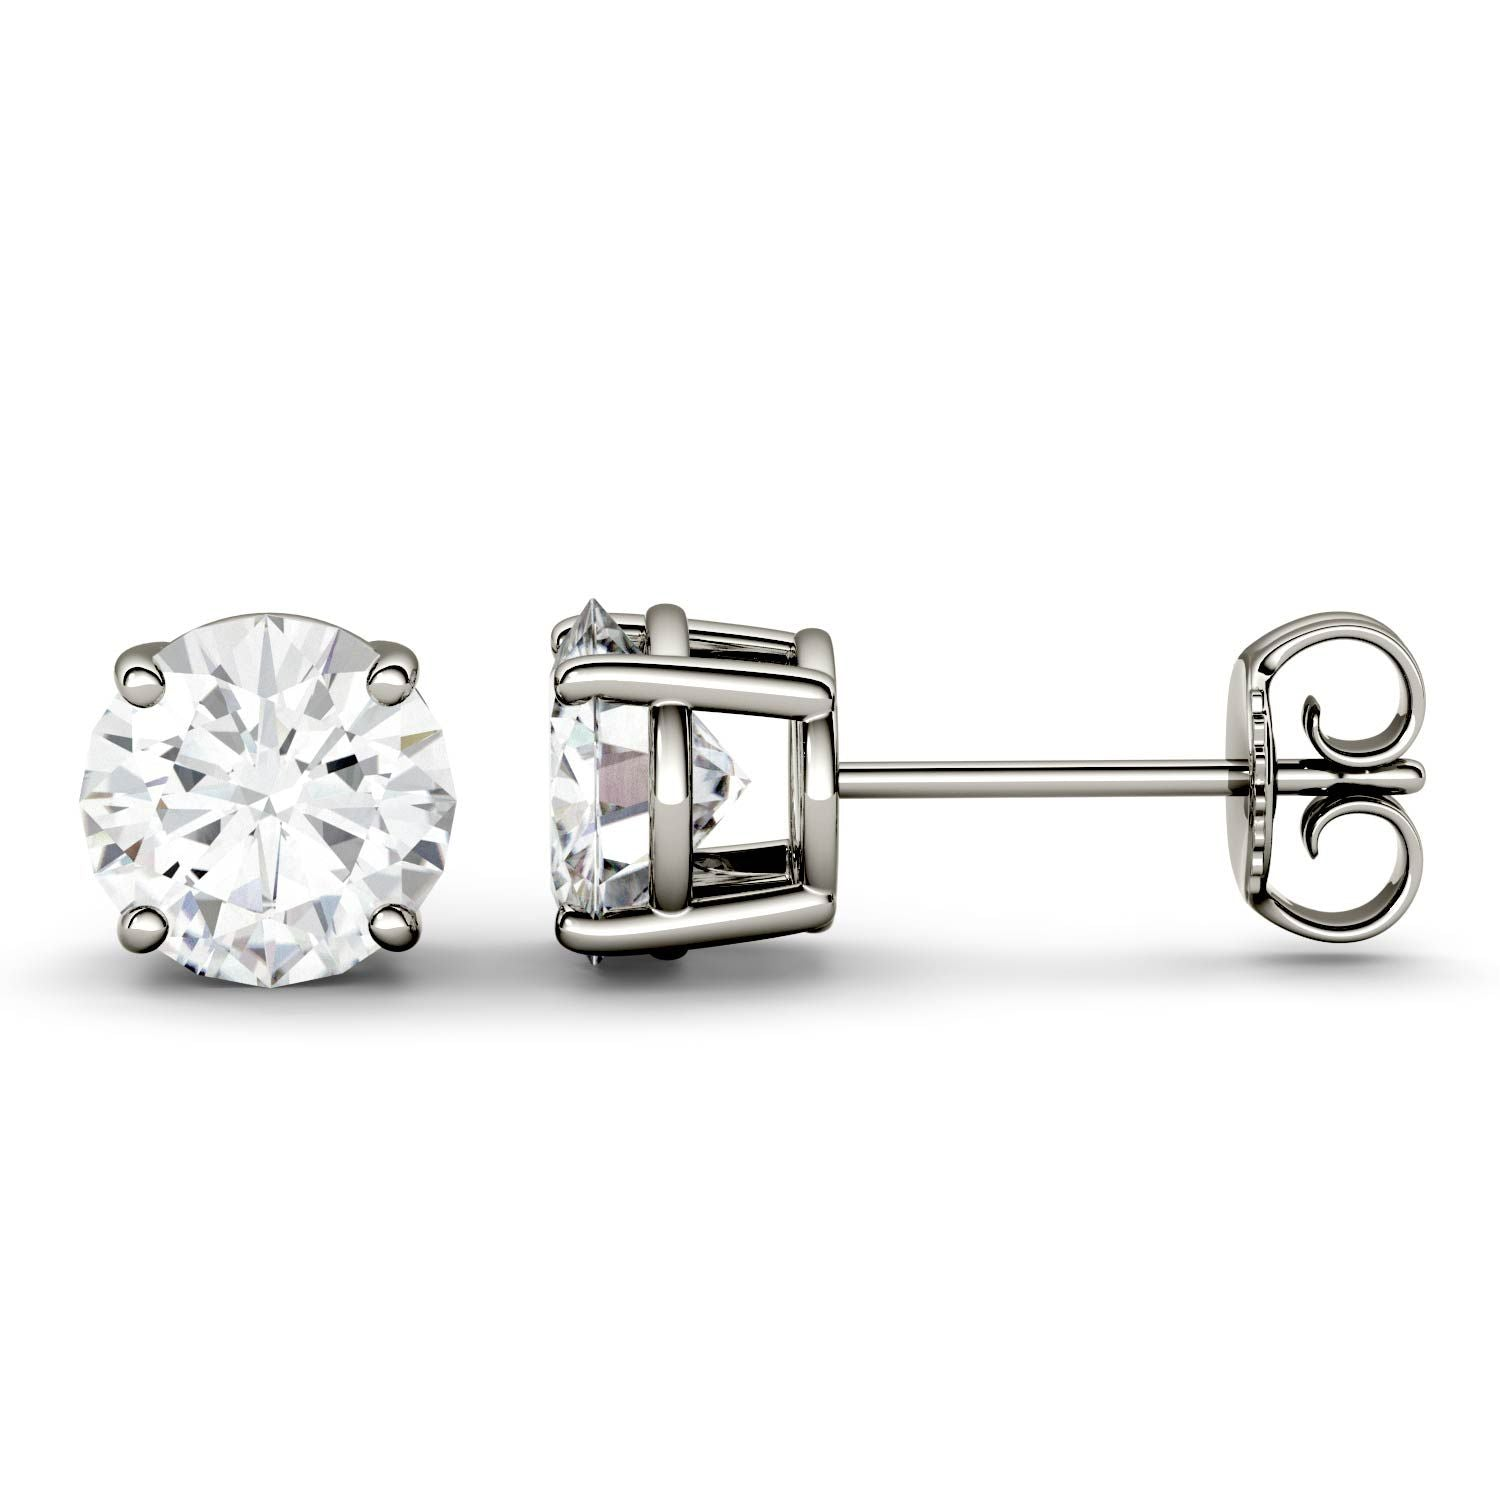 1 Carat TW Charles & Colvard Moissanite Stud Earrings in White Gold-612698 - Jewelry by Johan